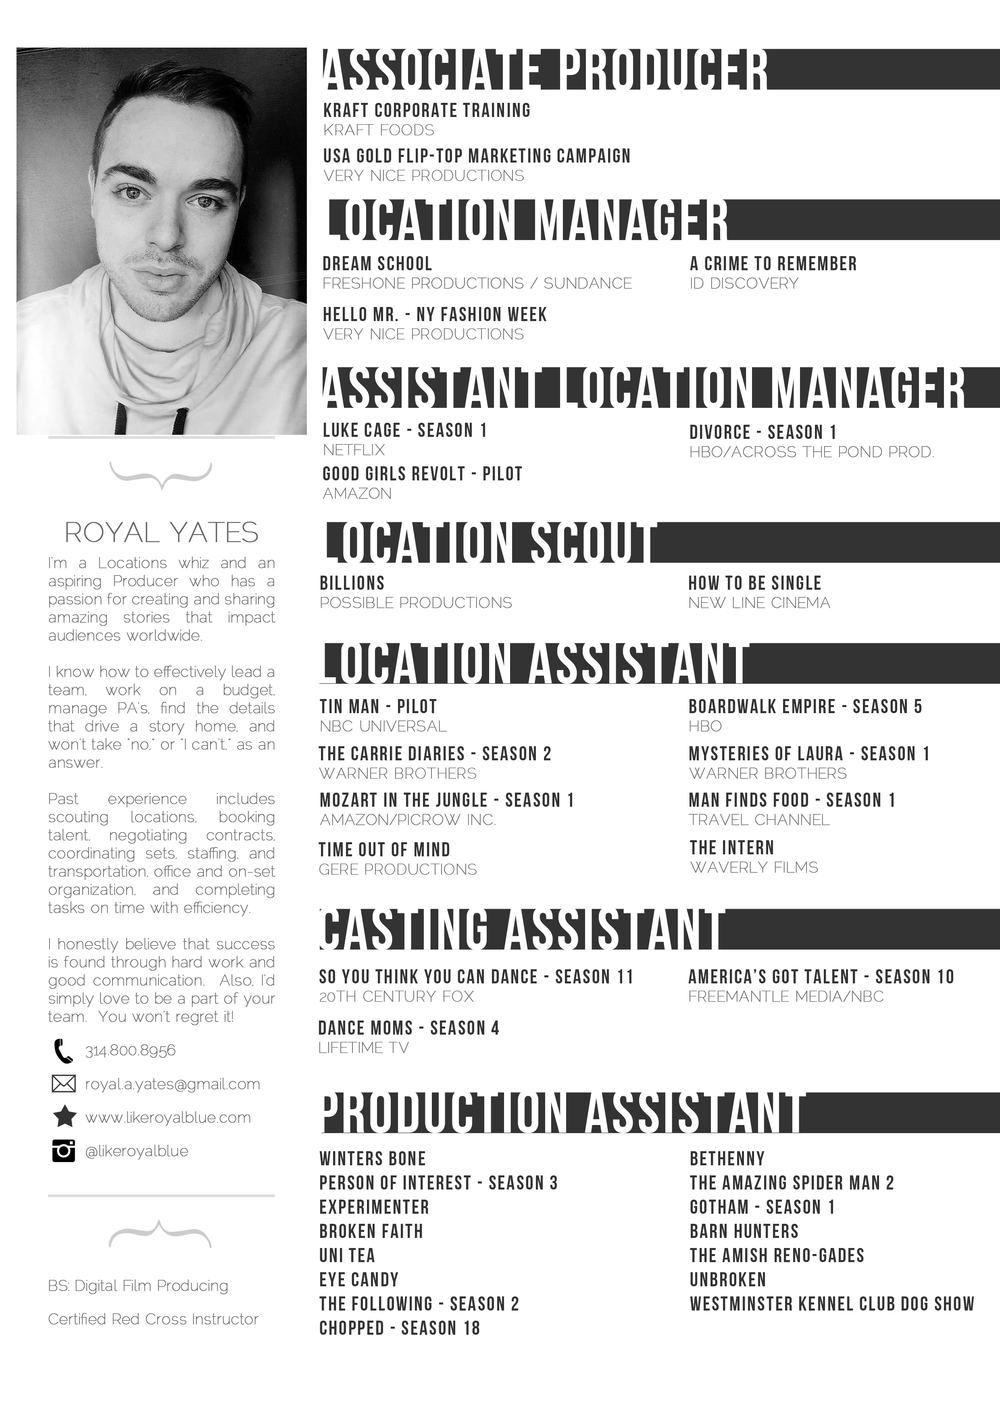 Resume Royal Yates